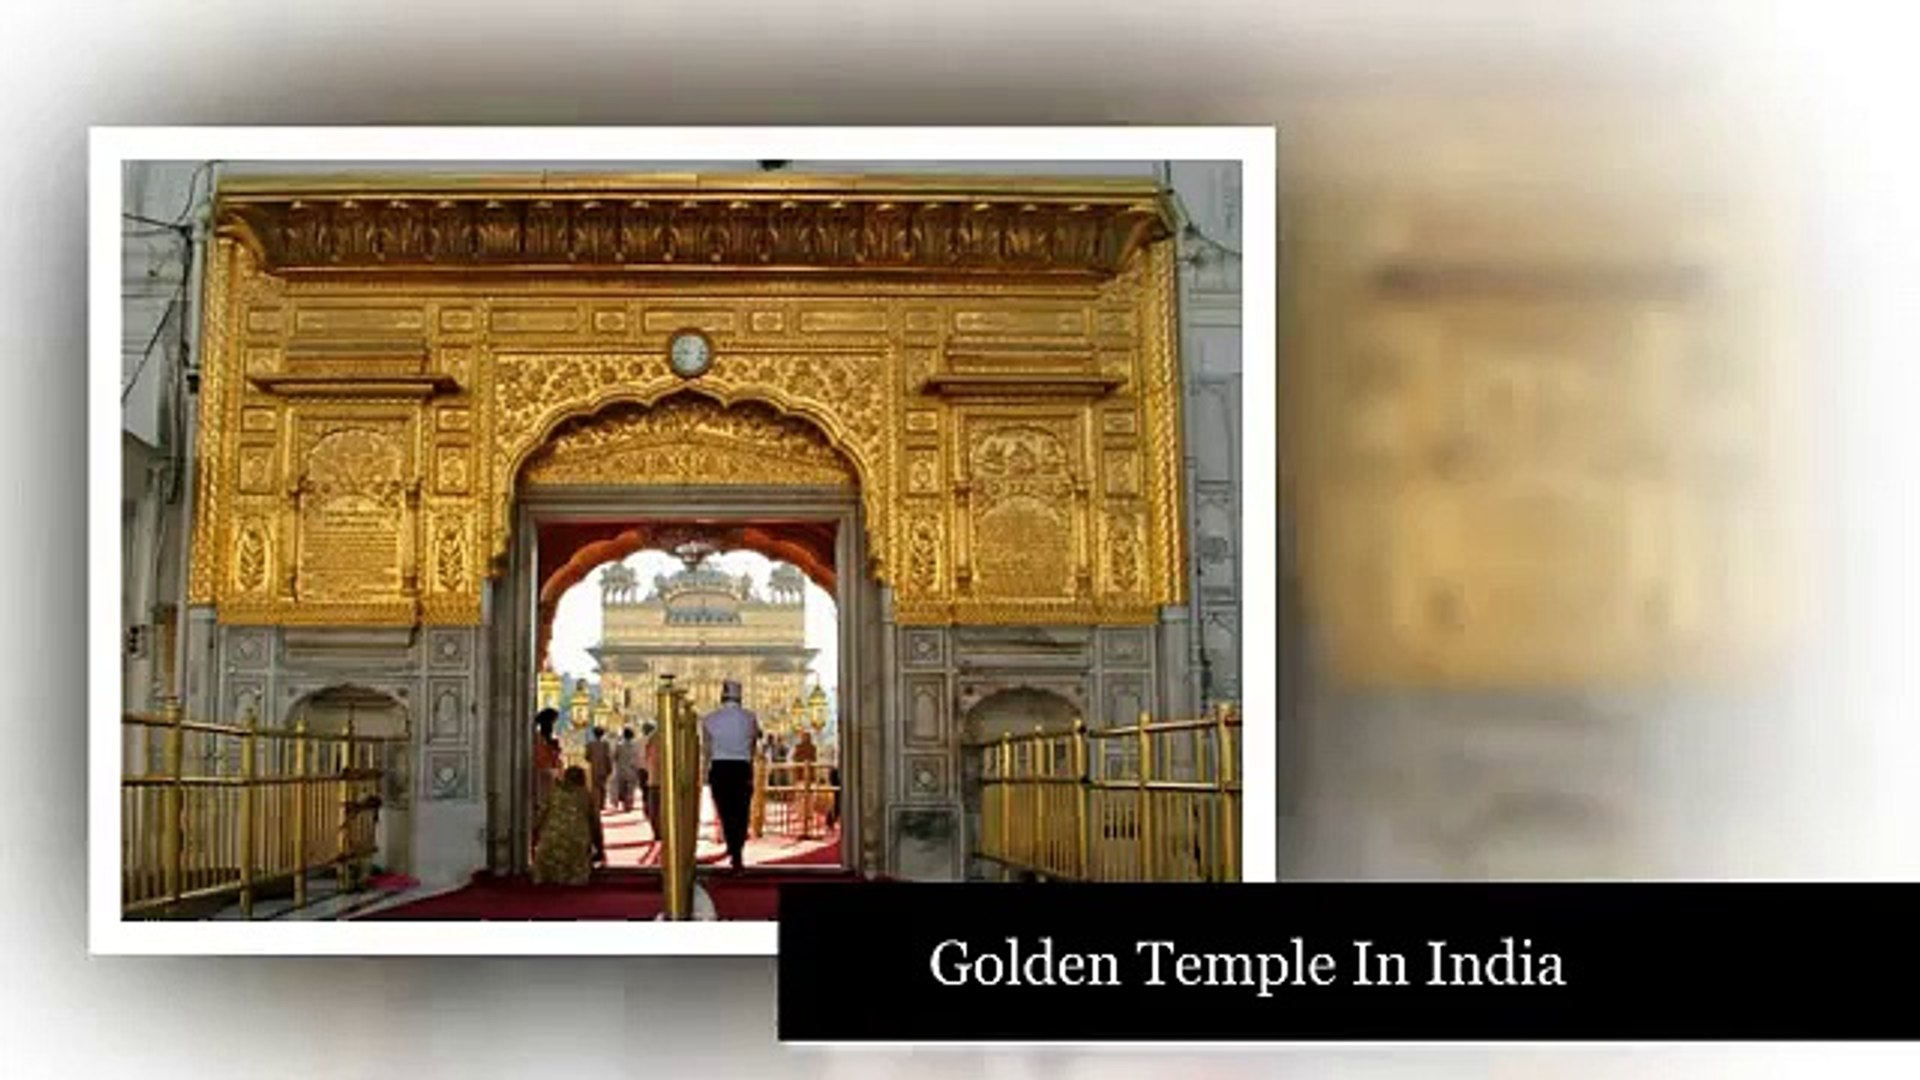 Golden Temple in India - Golden temple history